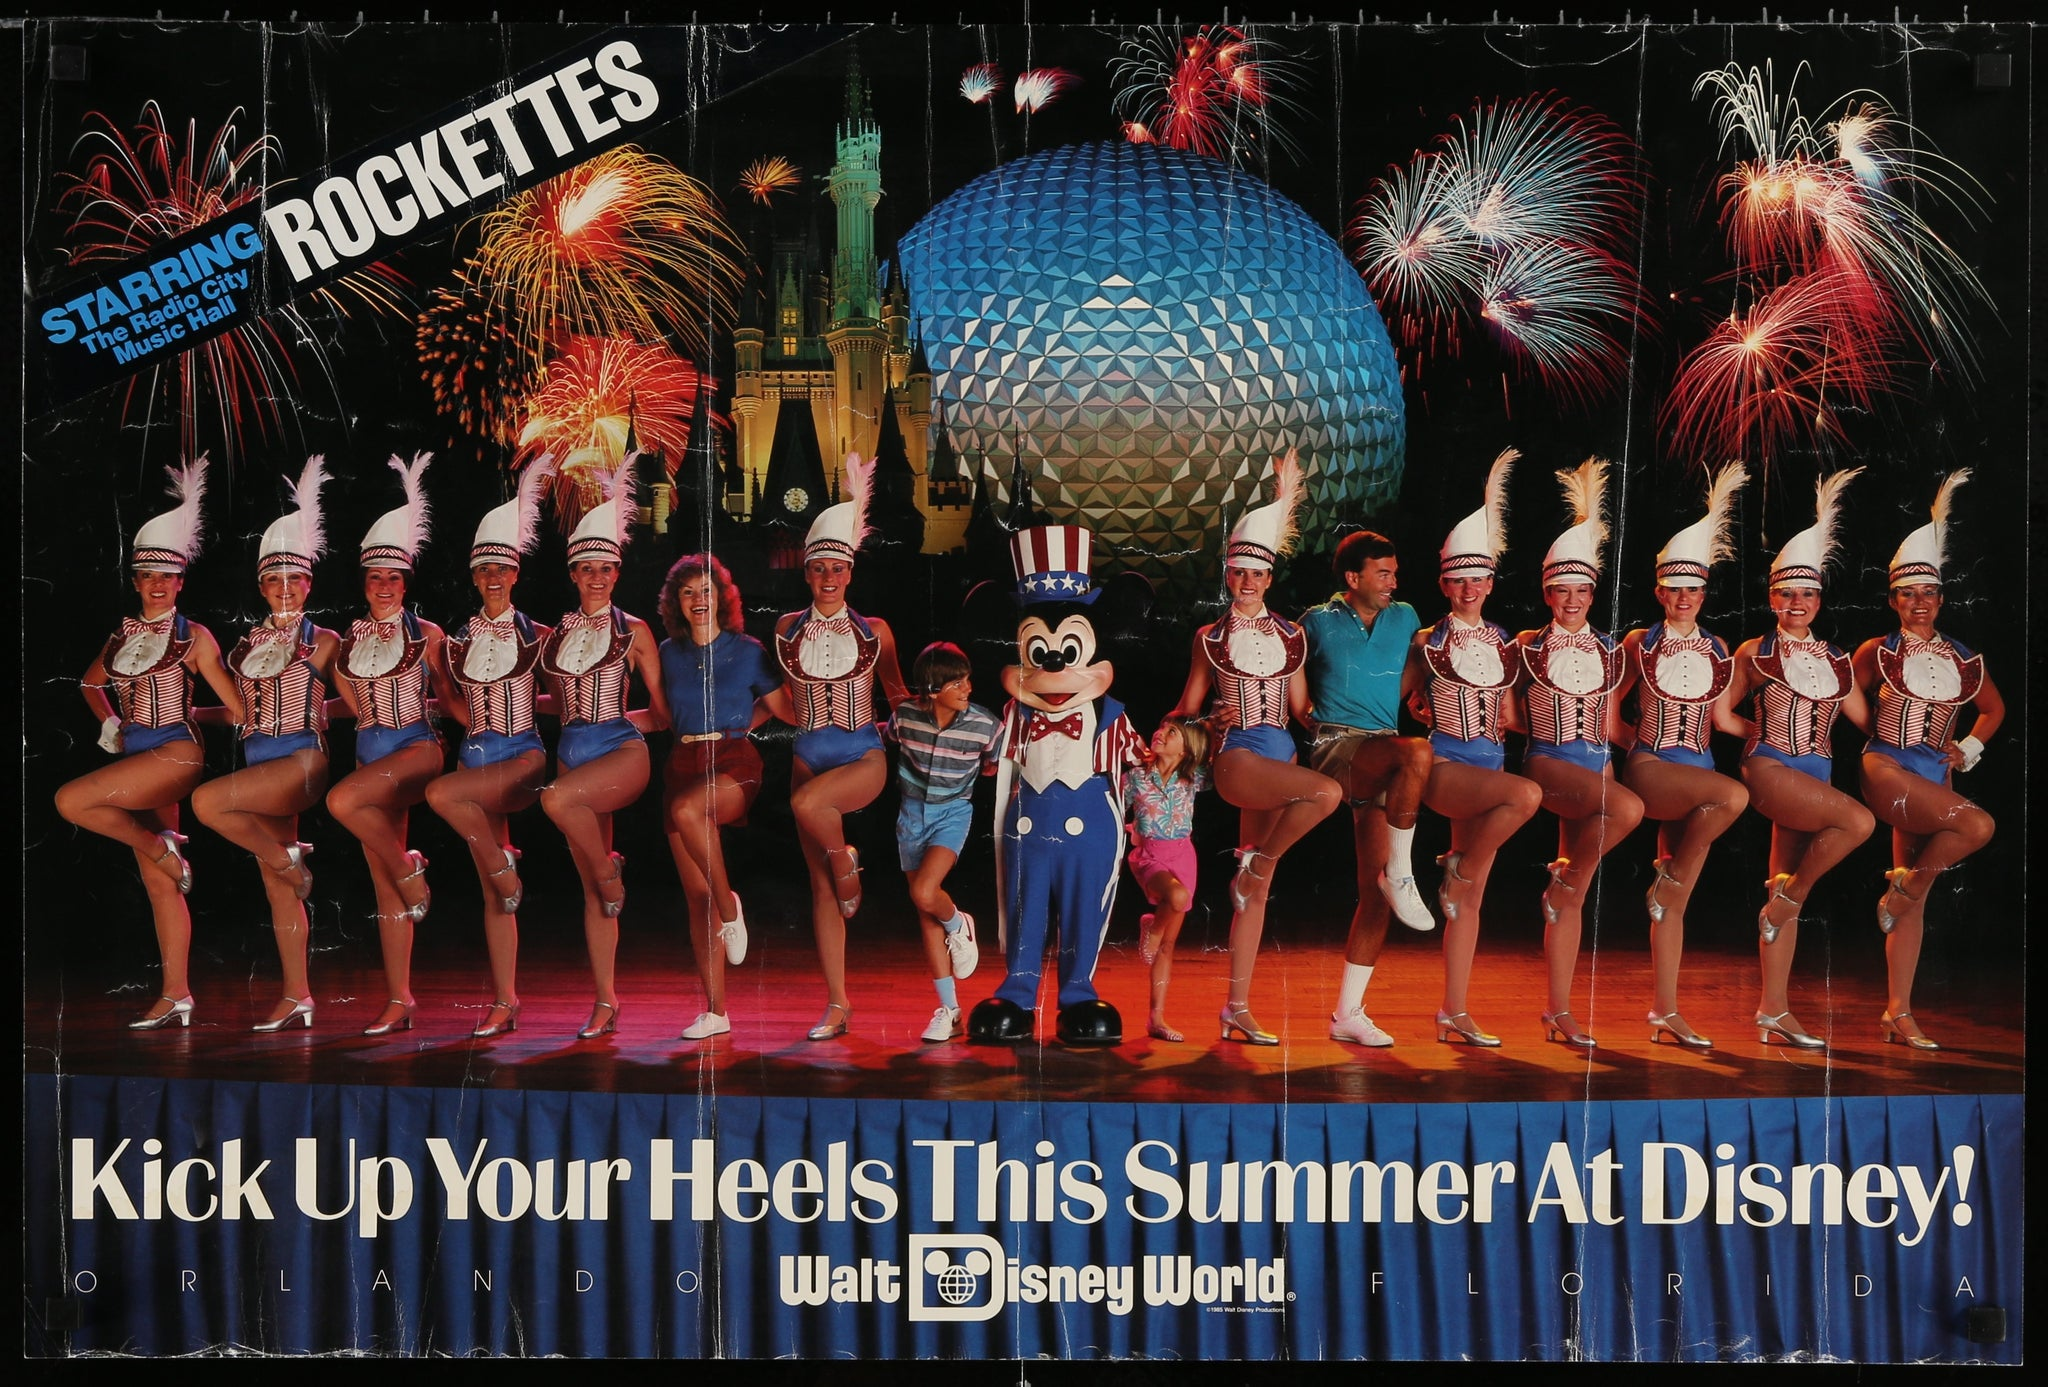 Rockettes WDW Poster - 1985